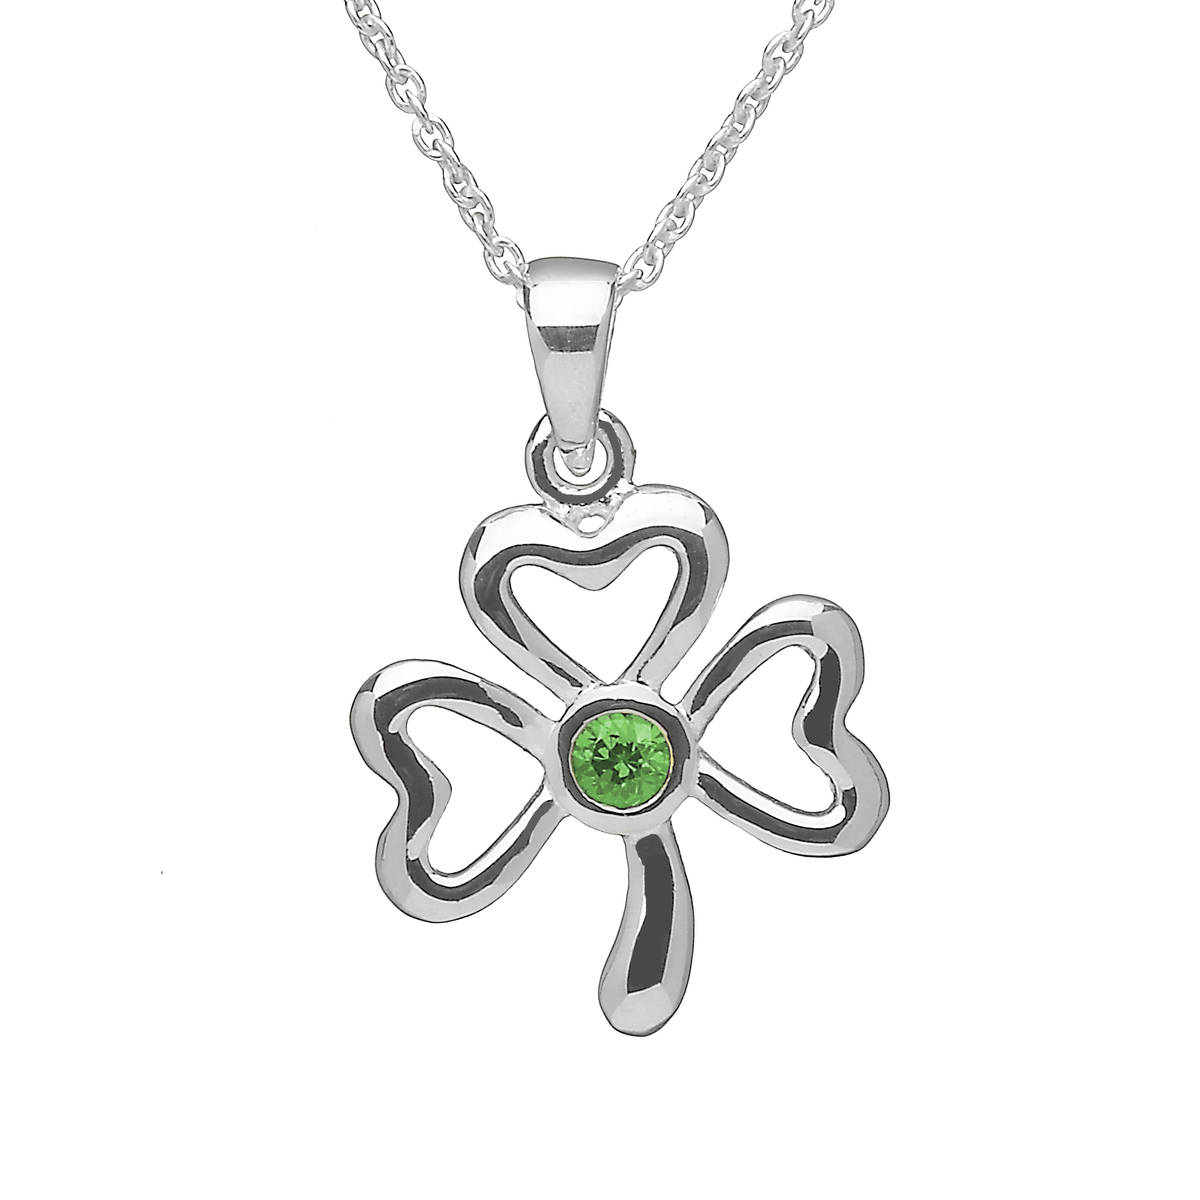 Silver Shamrock Pend With Green Stone Centre